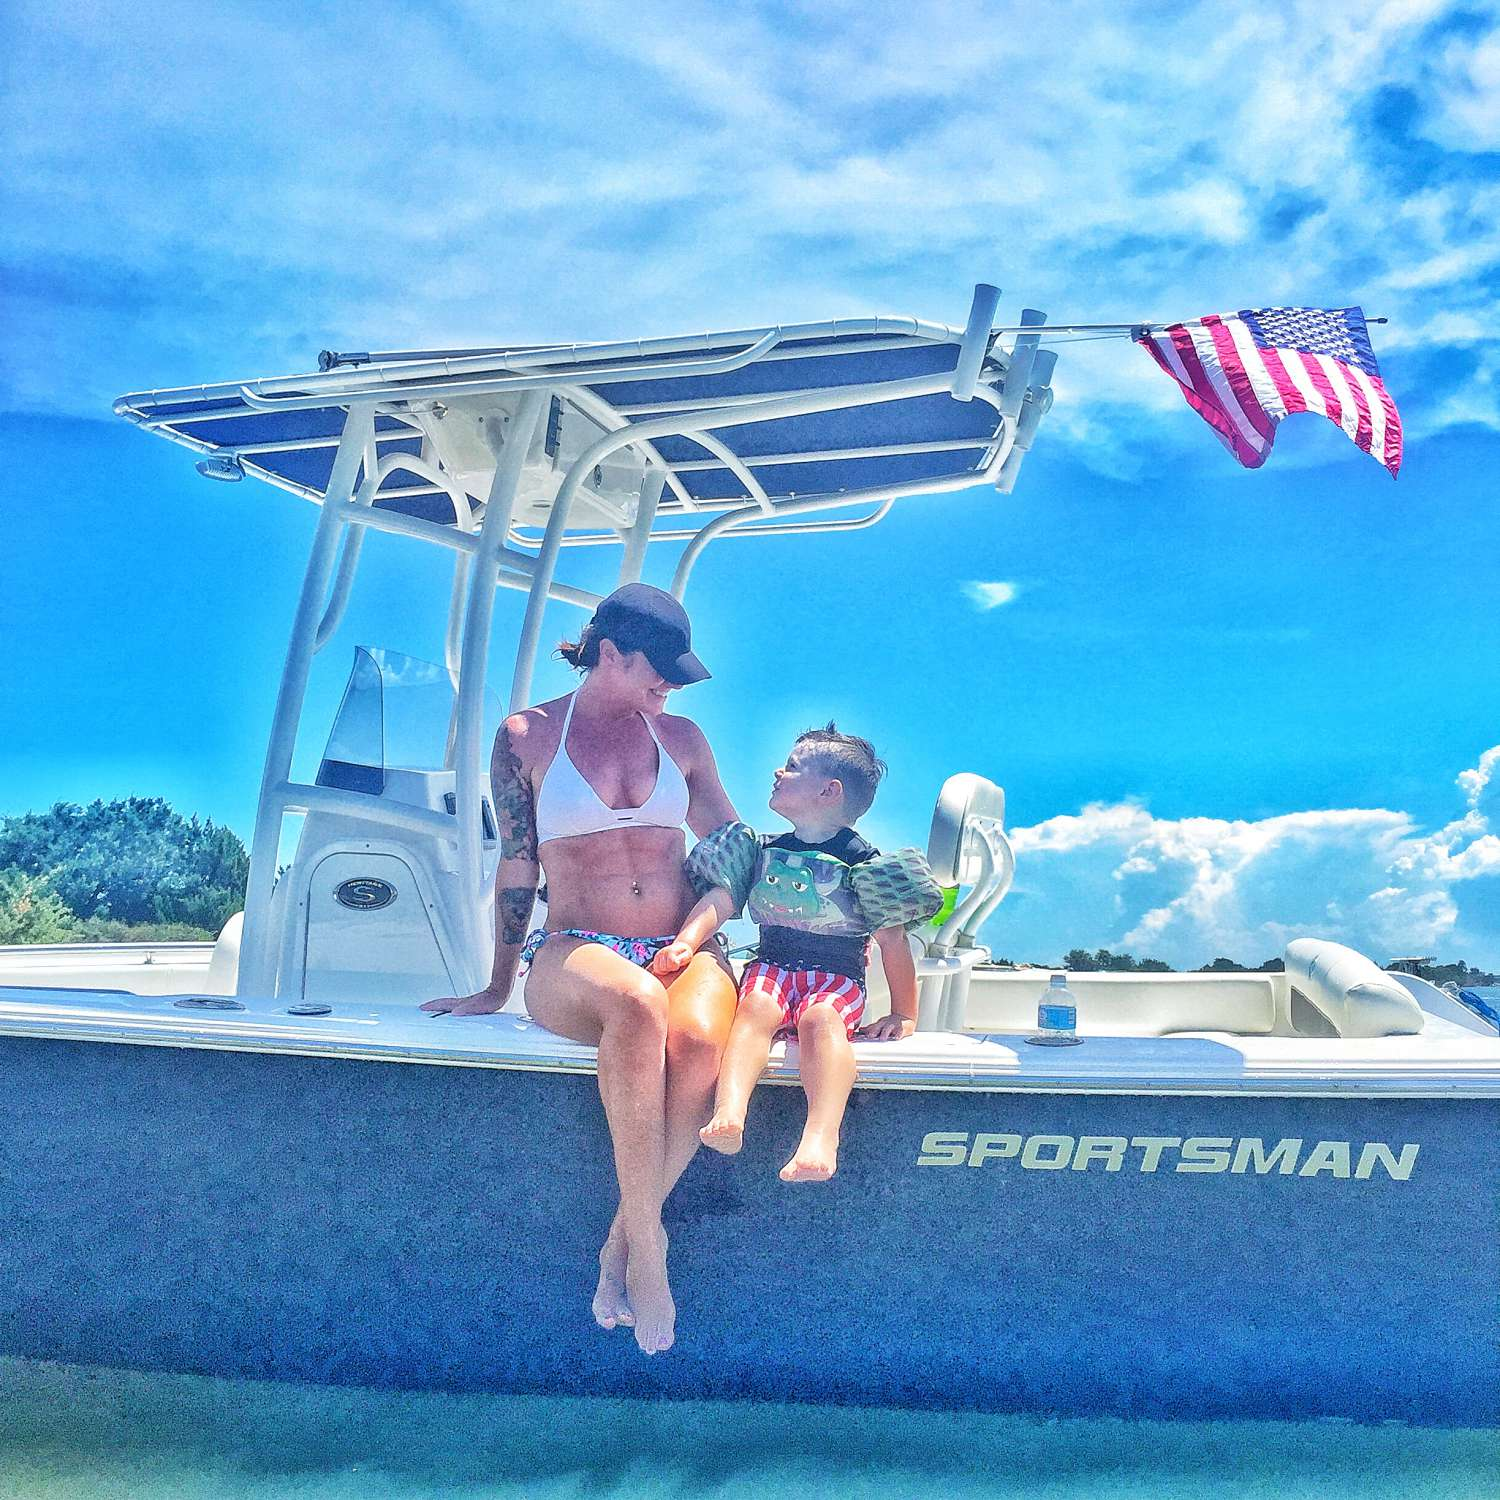 Title: Mamas Boy - On board their Sportsman Heritage 211 Center Console - Location: Jacksonville, Florida. Participating in the Photo Contest #SportsmanAugust2016